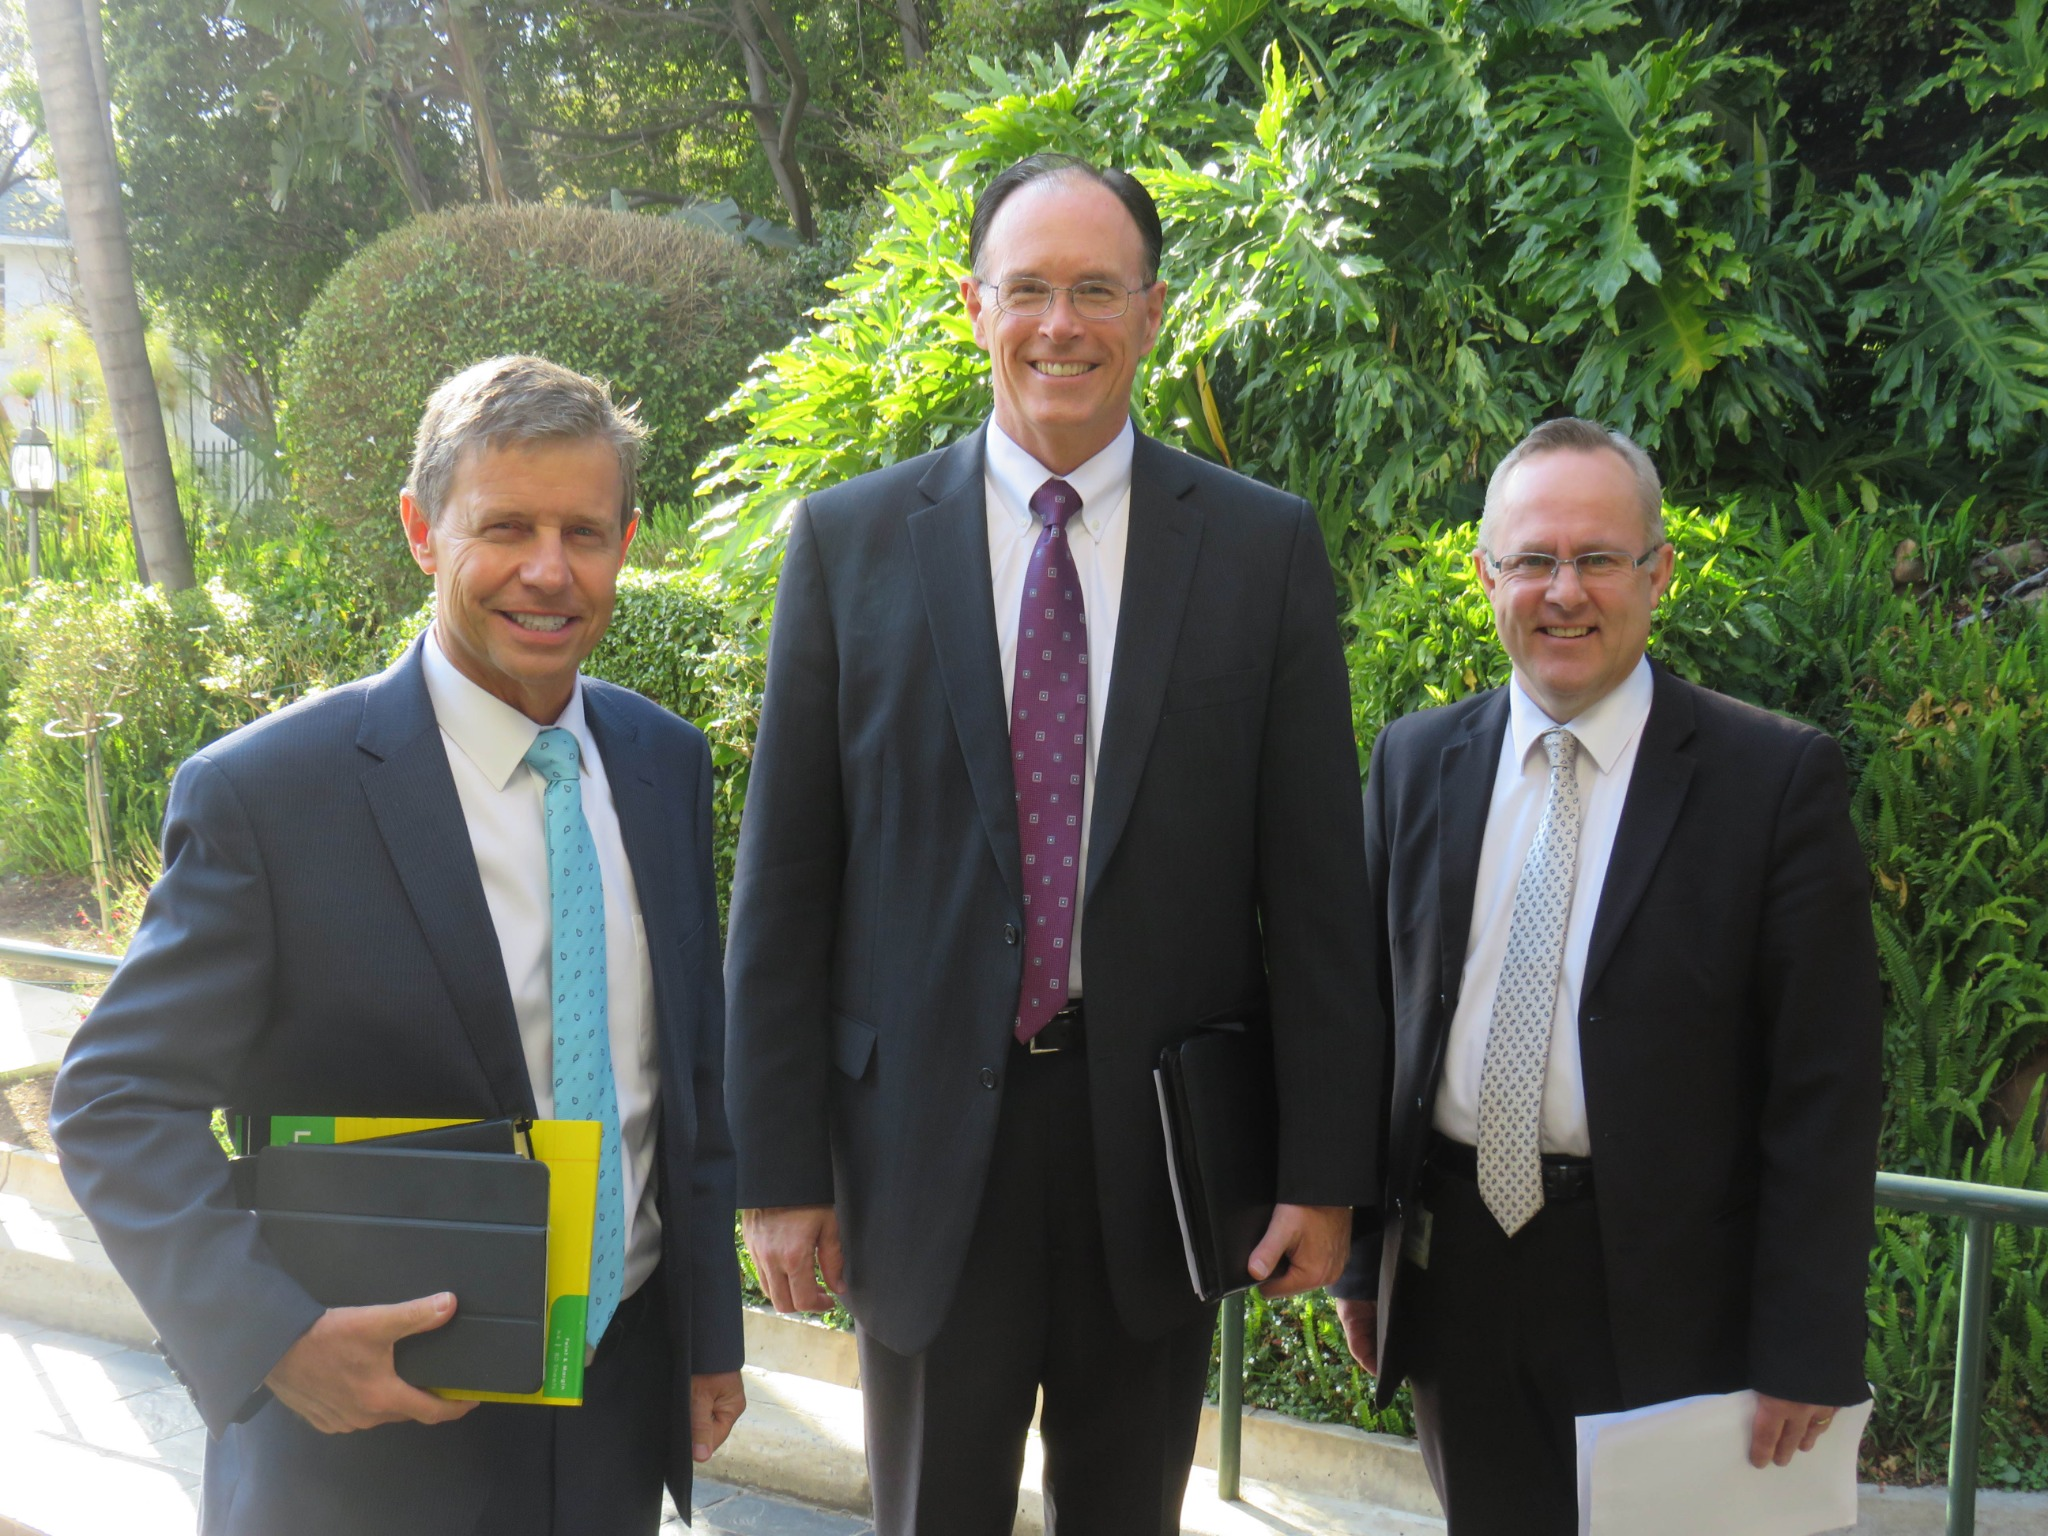 From left: Elder S. Mark Palmer, Africa Southeast Area; Bishop W. Christopher Waddell, second counselor in the Presiding Bishopric; and Marius von Mollendorff, director of temporal affairs for the Africa Southeast Area; are photographed together in Johannesburg, where they made the Aug. 19, 2019, announcement regarding the offices of the new Africa Central Area. Intellectual Reserve, Inc.